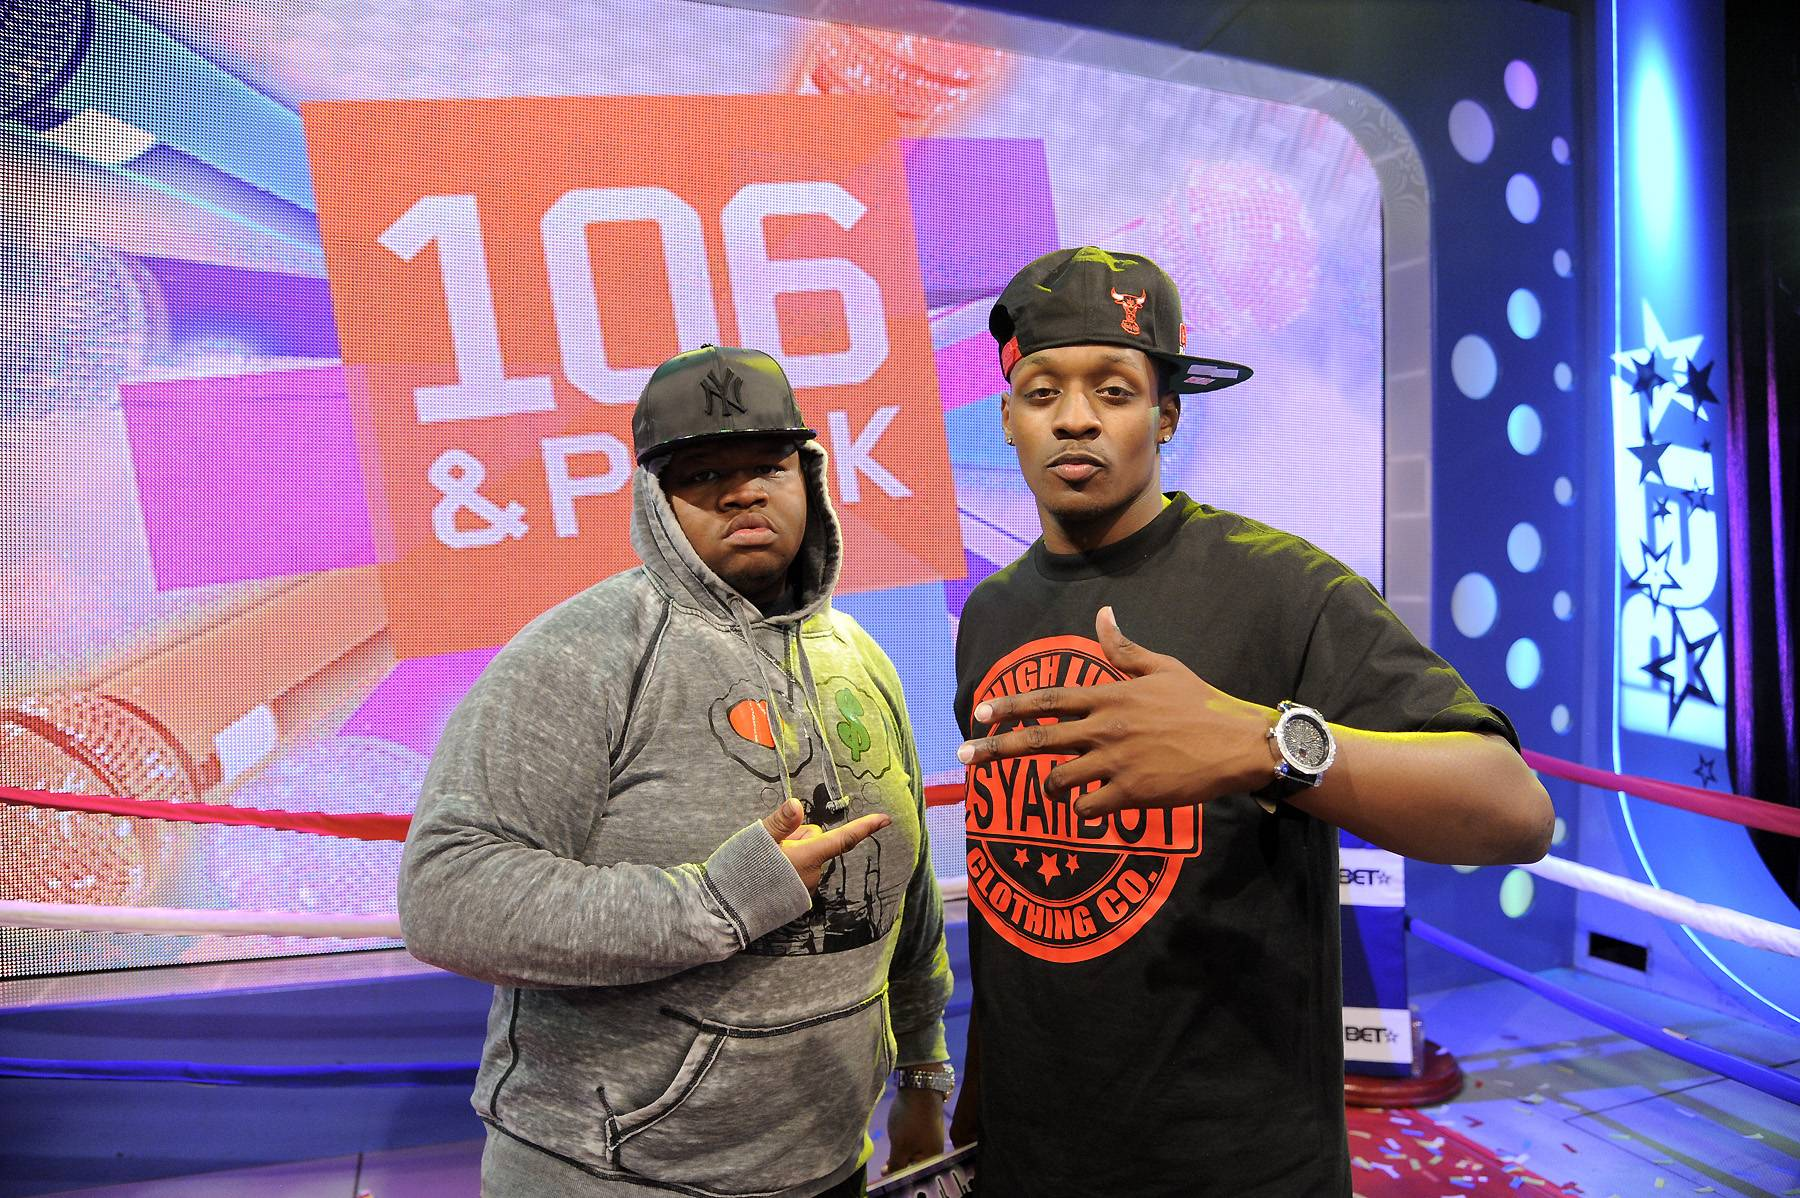 It's All Love - BET is proud of the mutual respect between Relly and Syahboy at 106 & Park, April 6, 2012. (photo: John Ricard / BET)